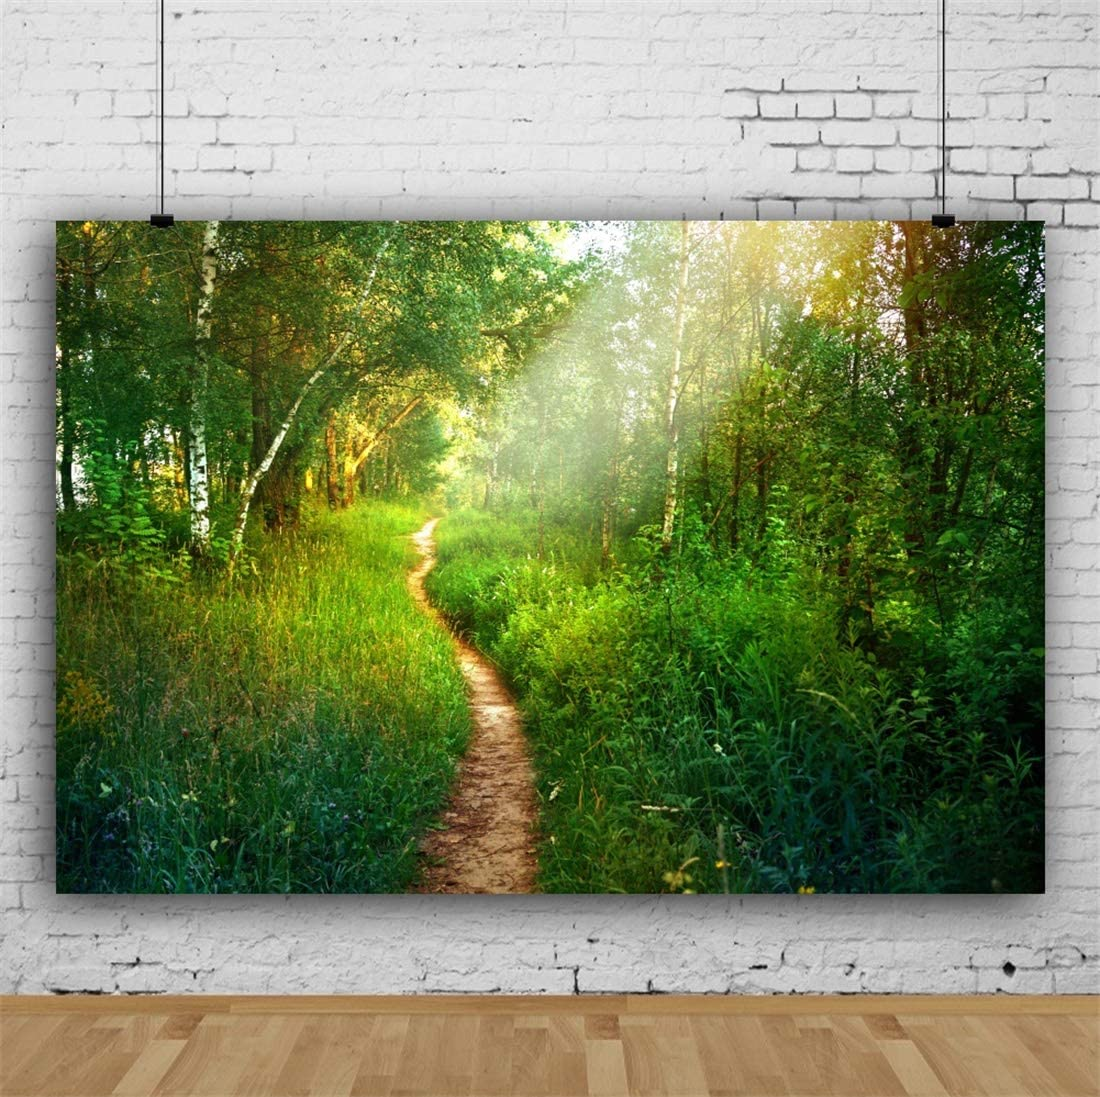 Yeele 10x8ft Spring Landscape Photography Background Green Tree Canyon Grassland Lawn Sunshine Forest Jungle Trail Party Decoration Photo Backdrop Adults Portrait